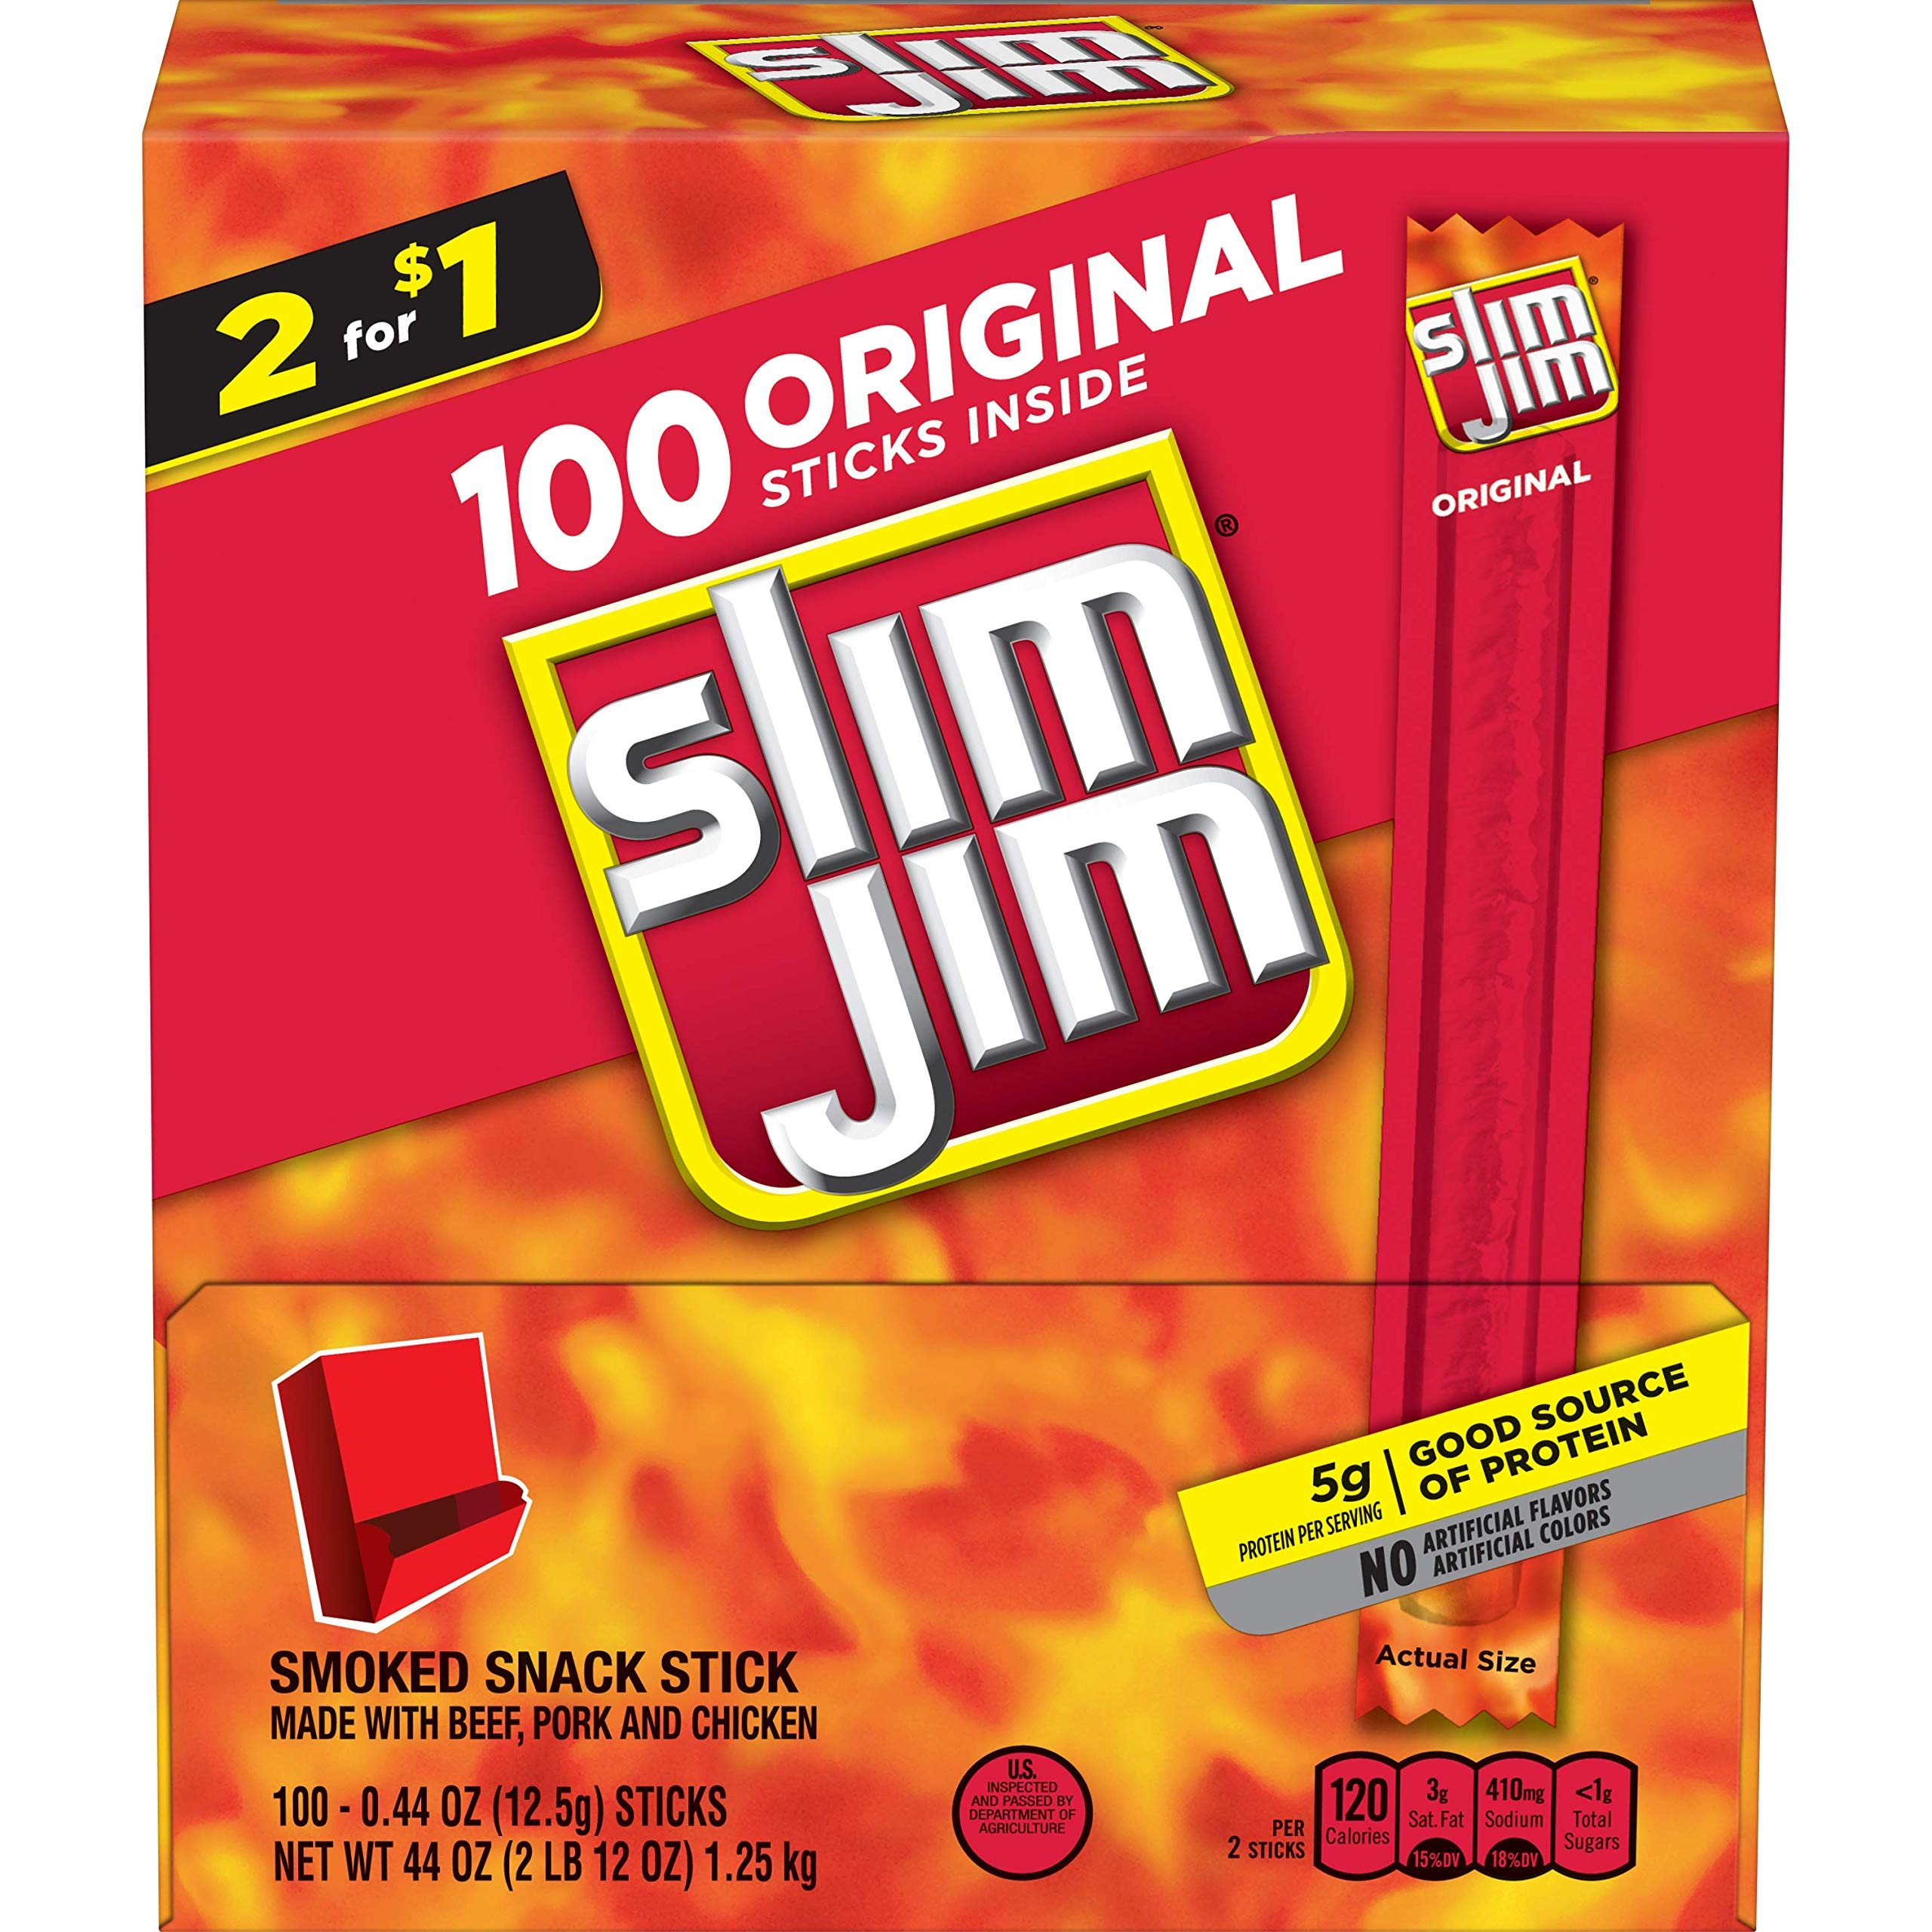 Slim Jim Snack-Sized Smoked Meat Stick, Original Flavor, Keto Friendly, .44 Oz. (Pack of 100)